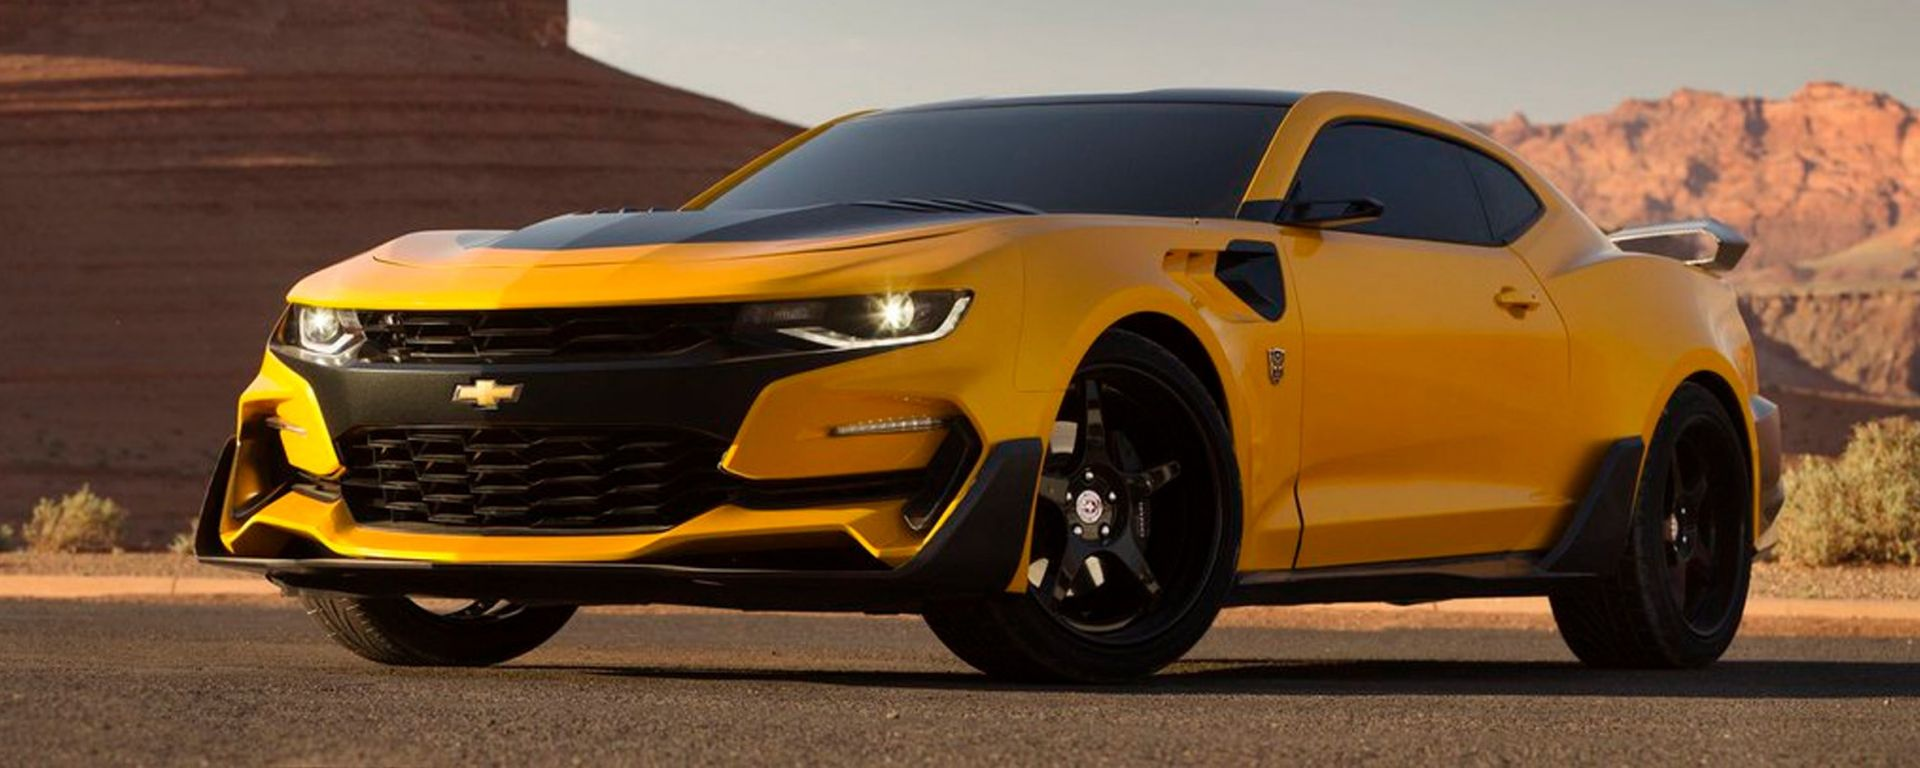 La Chevrolet Camaro che interpreterà Bumblebee in Transformers: The Last Knight